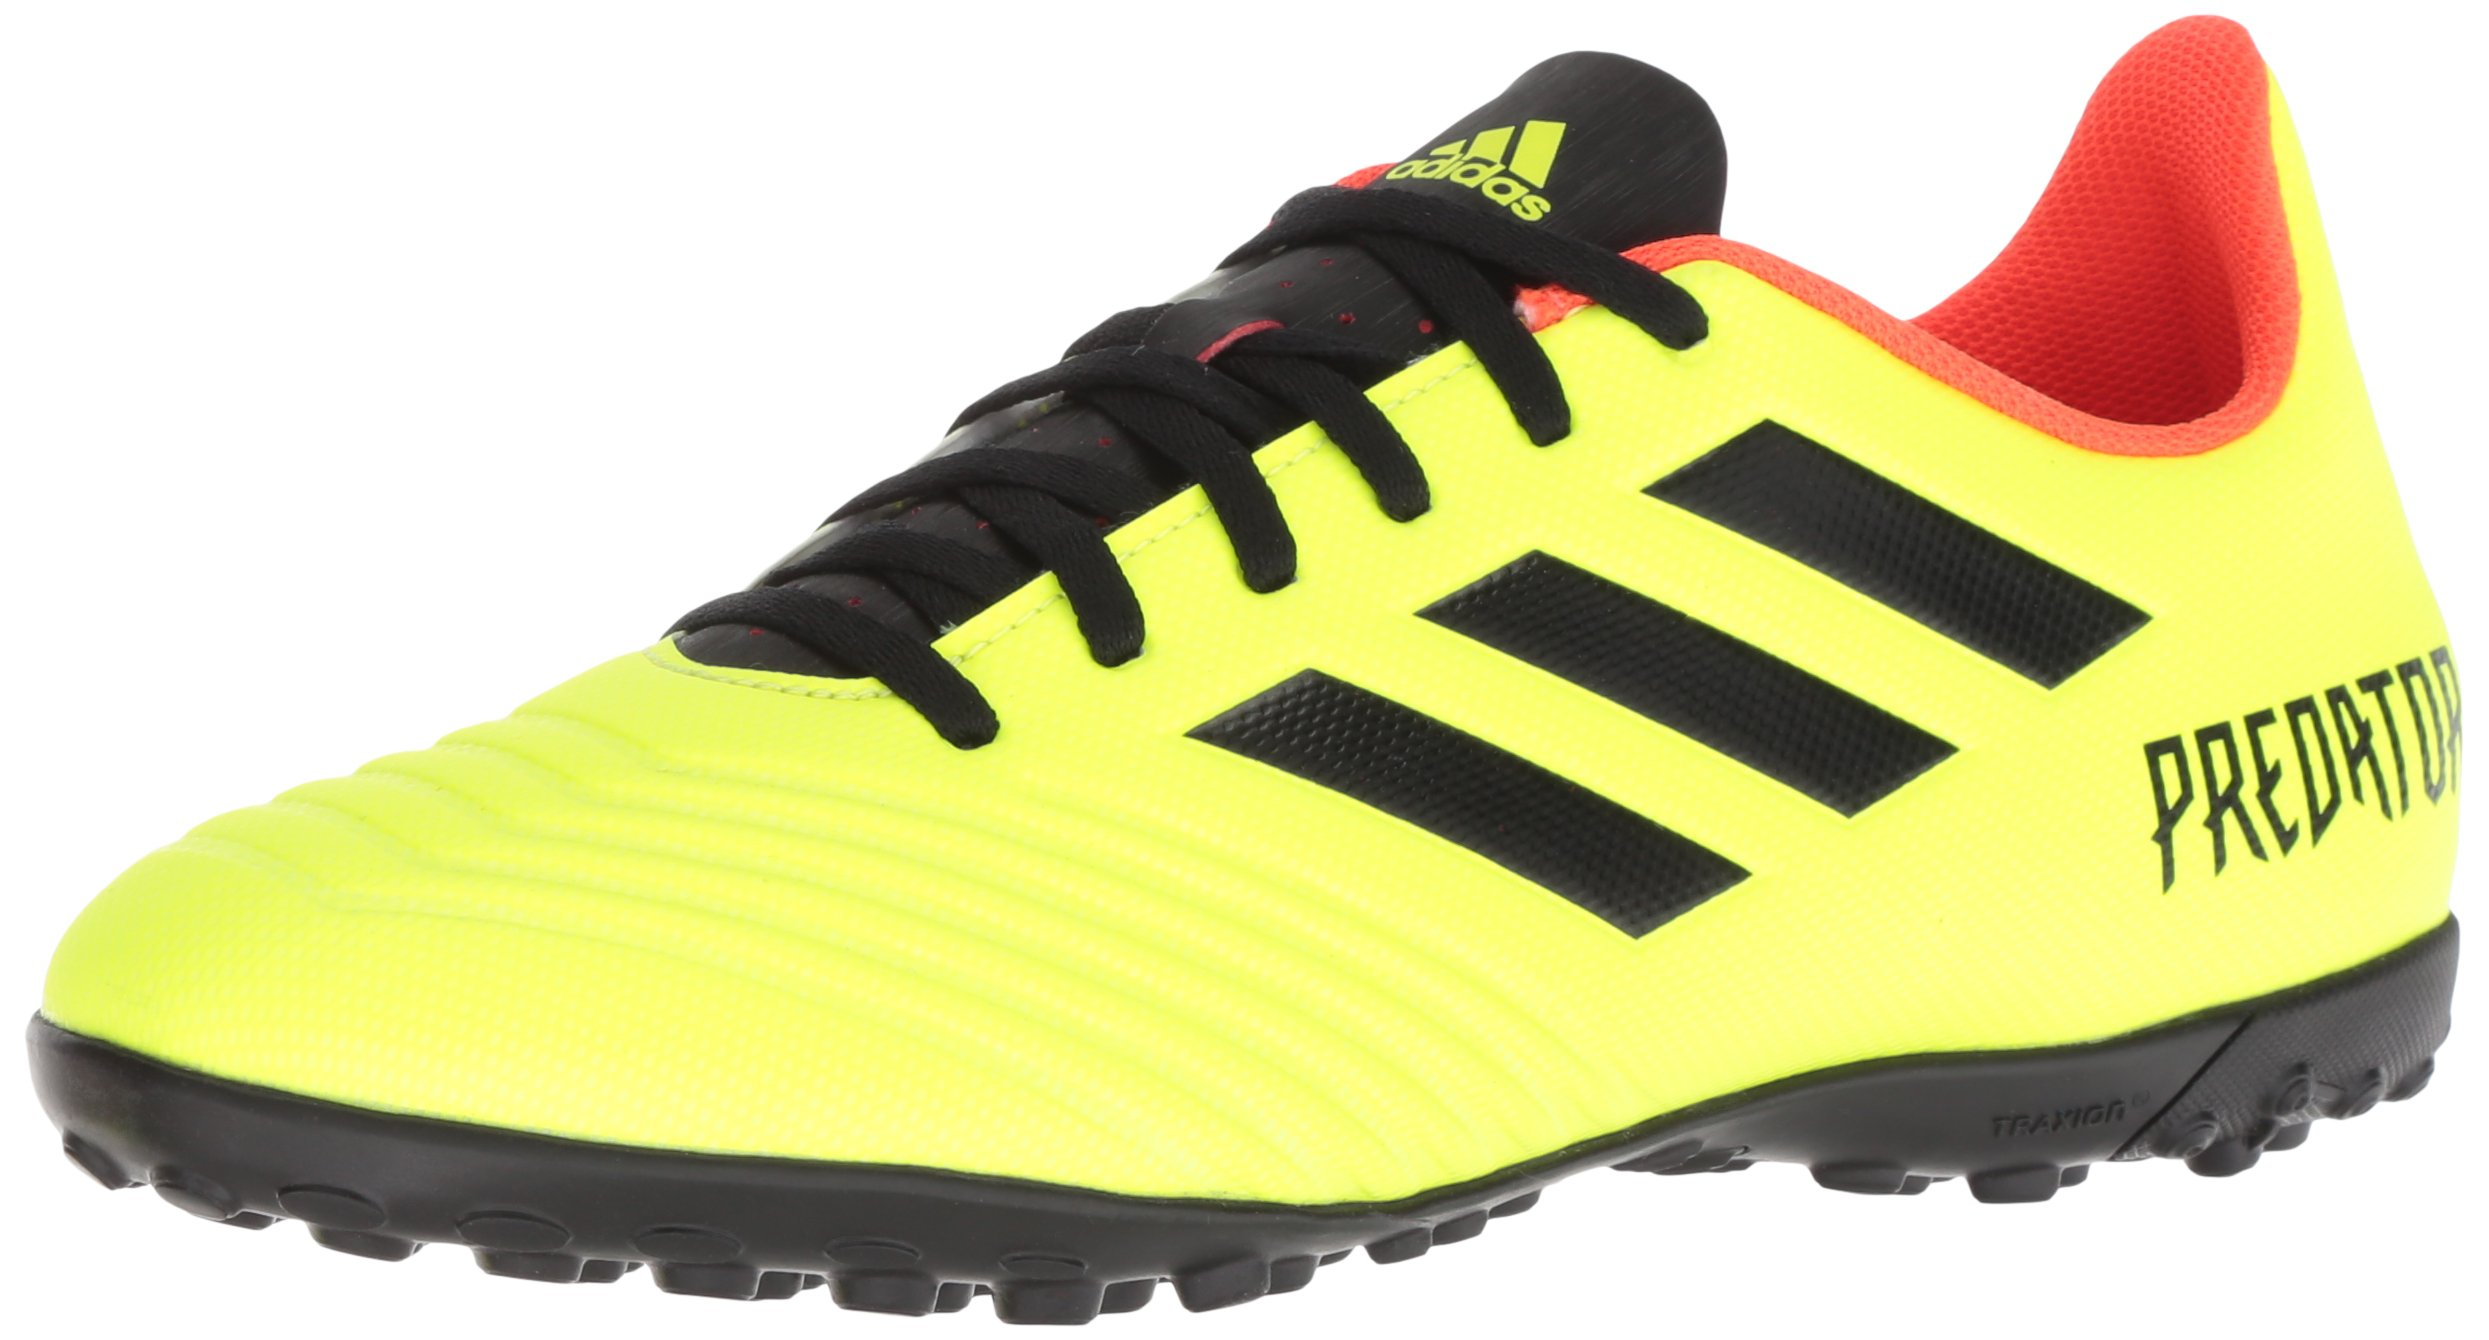 adidas Men's Predator Tango 18.4 Turf Soccer Shoe, Solar Yellow/Black/Solar Red, 10.5 M US